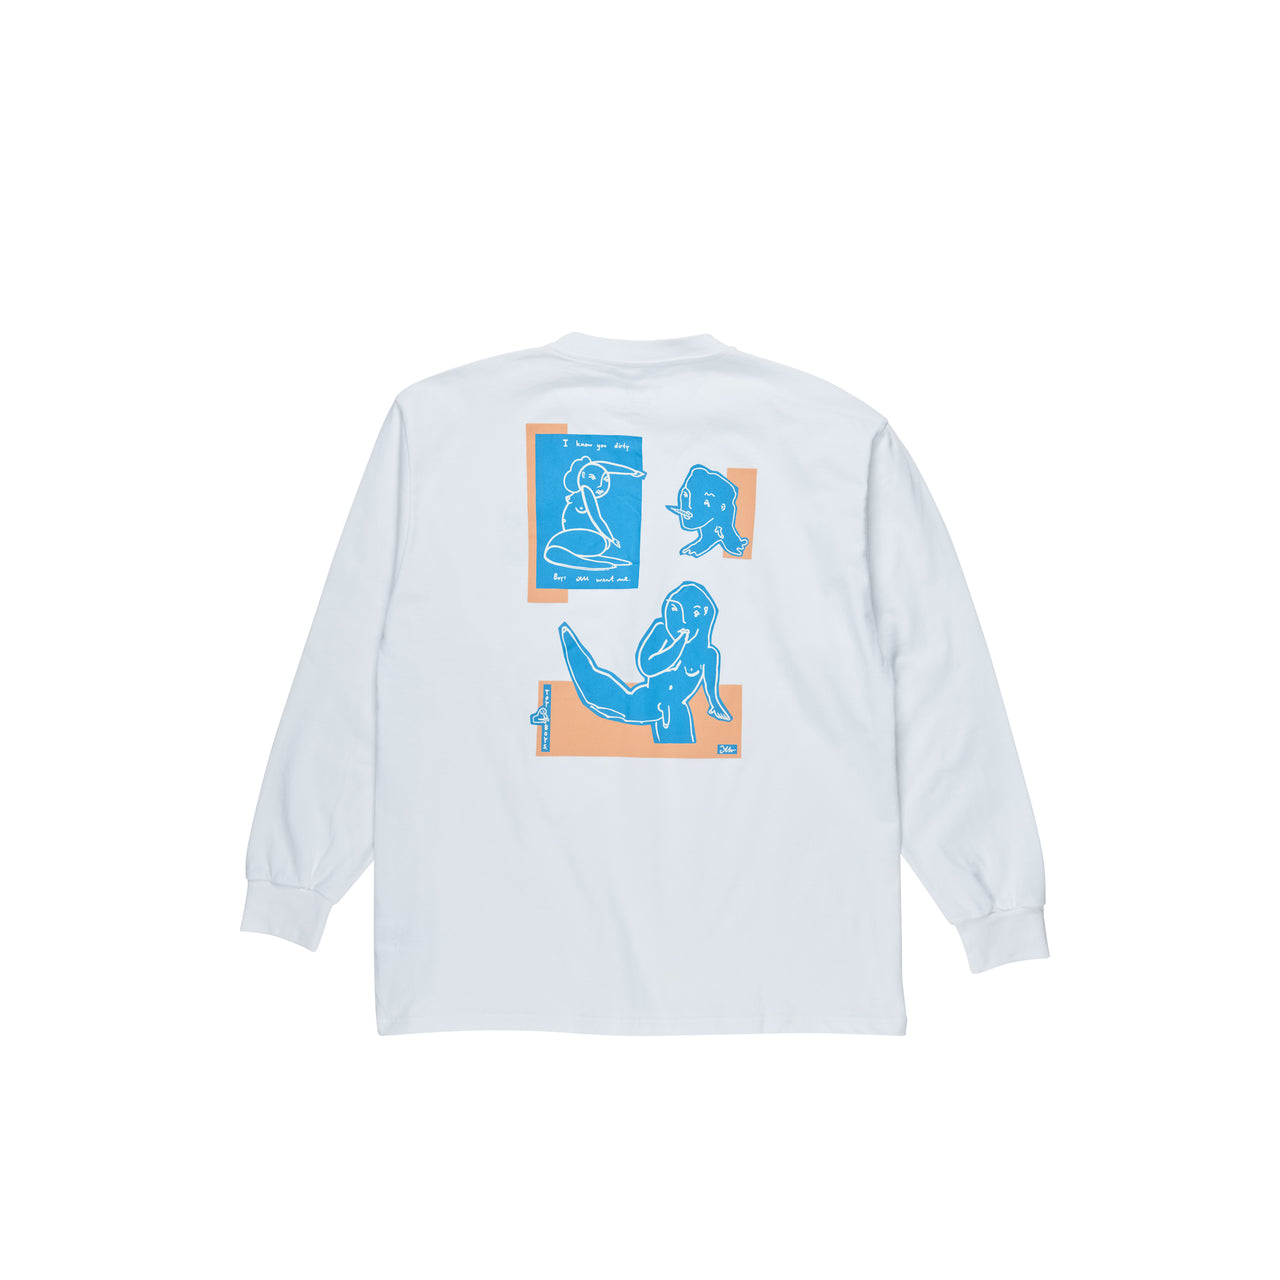 Dirty Boys Longsleeve